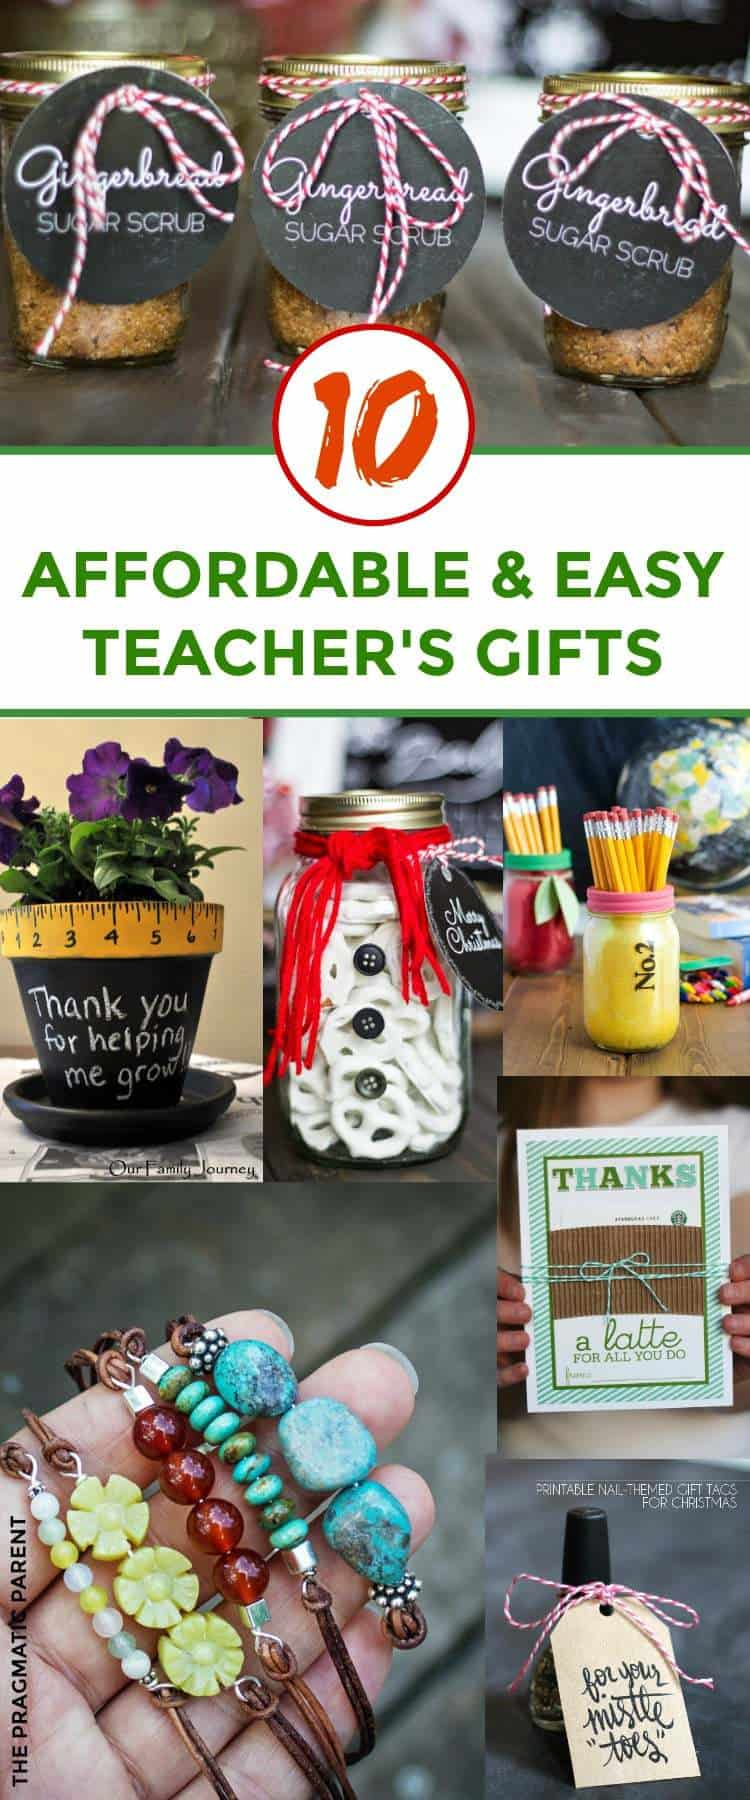 Affordable Teacher's Gifts for Christmas. Inexpensive Teacher's Gifts You Can Pull Together Quickly and Easily. Unique Teacher's Gift Ideas. Teacher's Gift Ideas for Christmas. #teachersgifts #teacherschristmasgifts #affordableteachersgifts